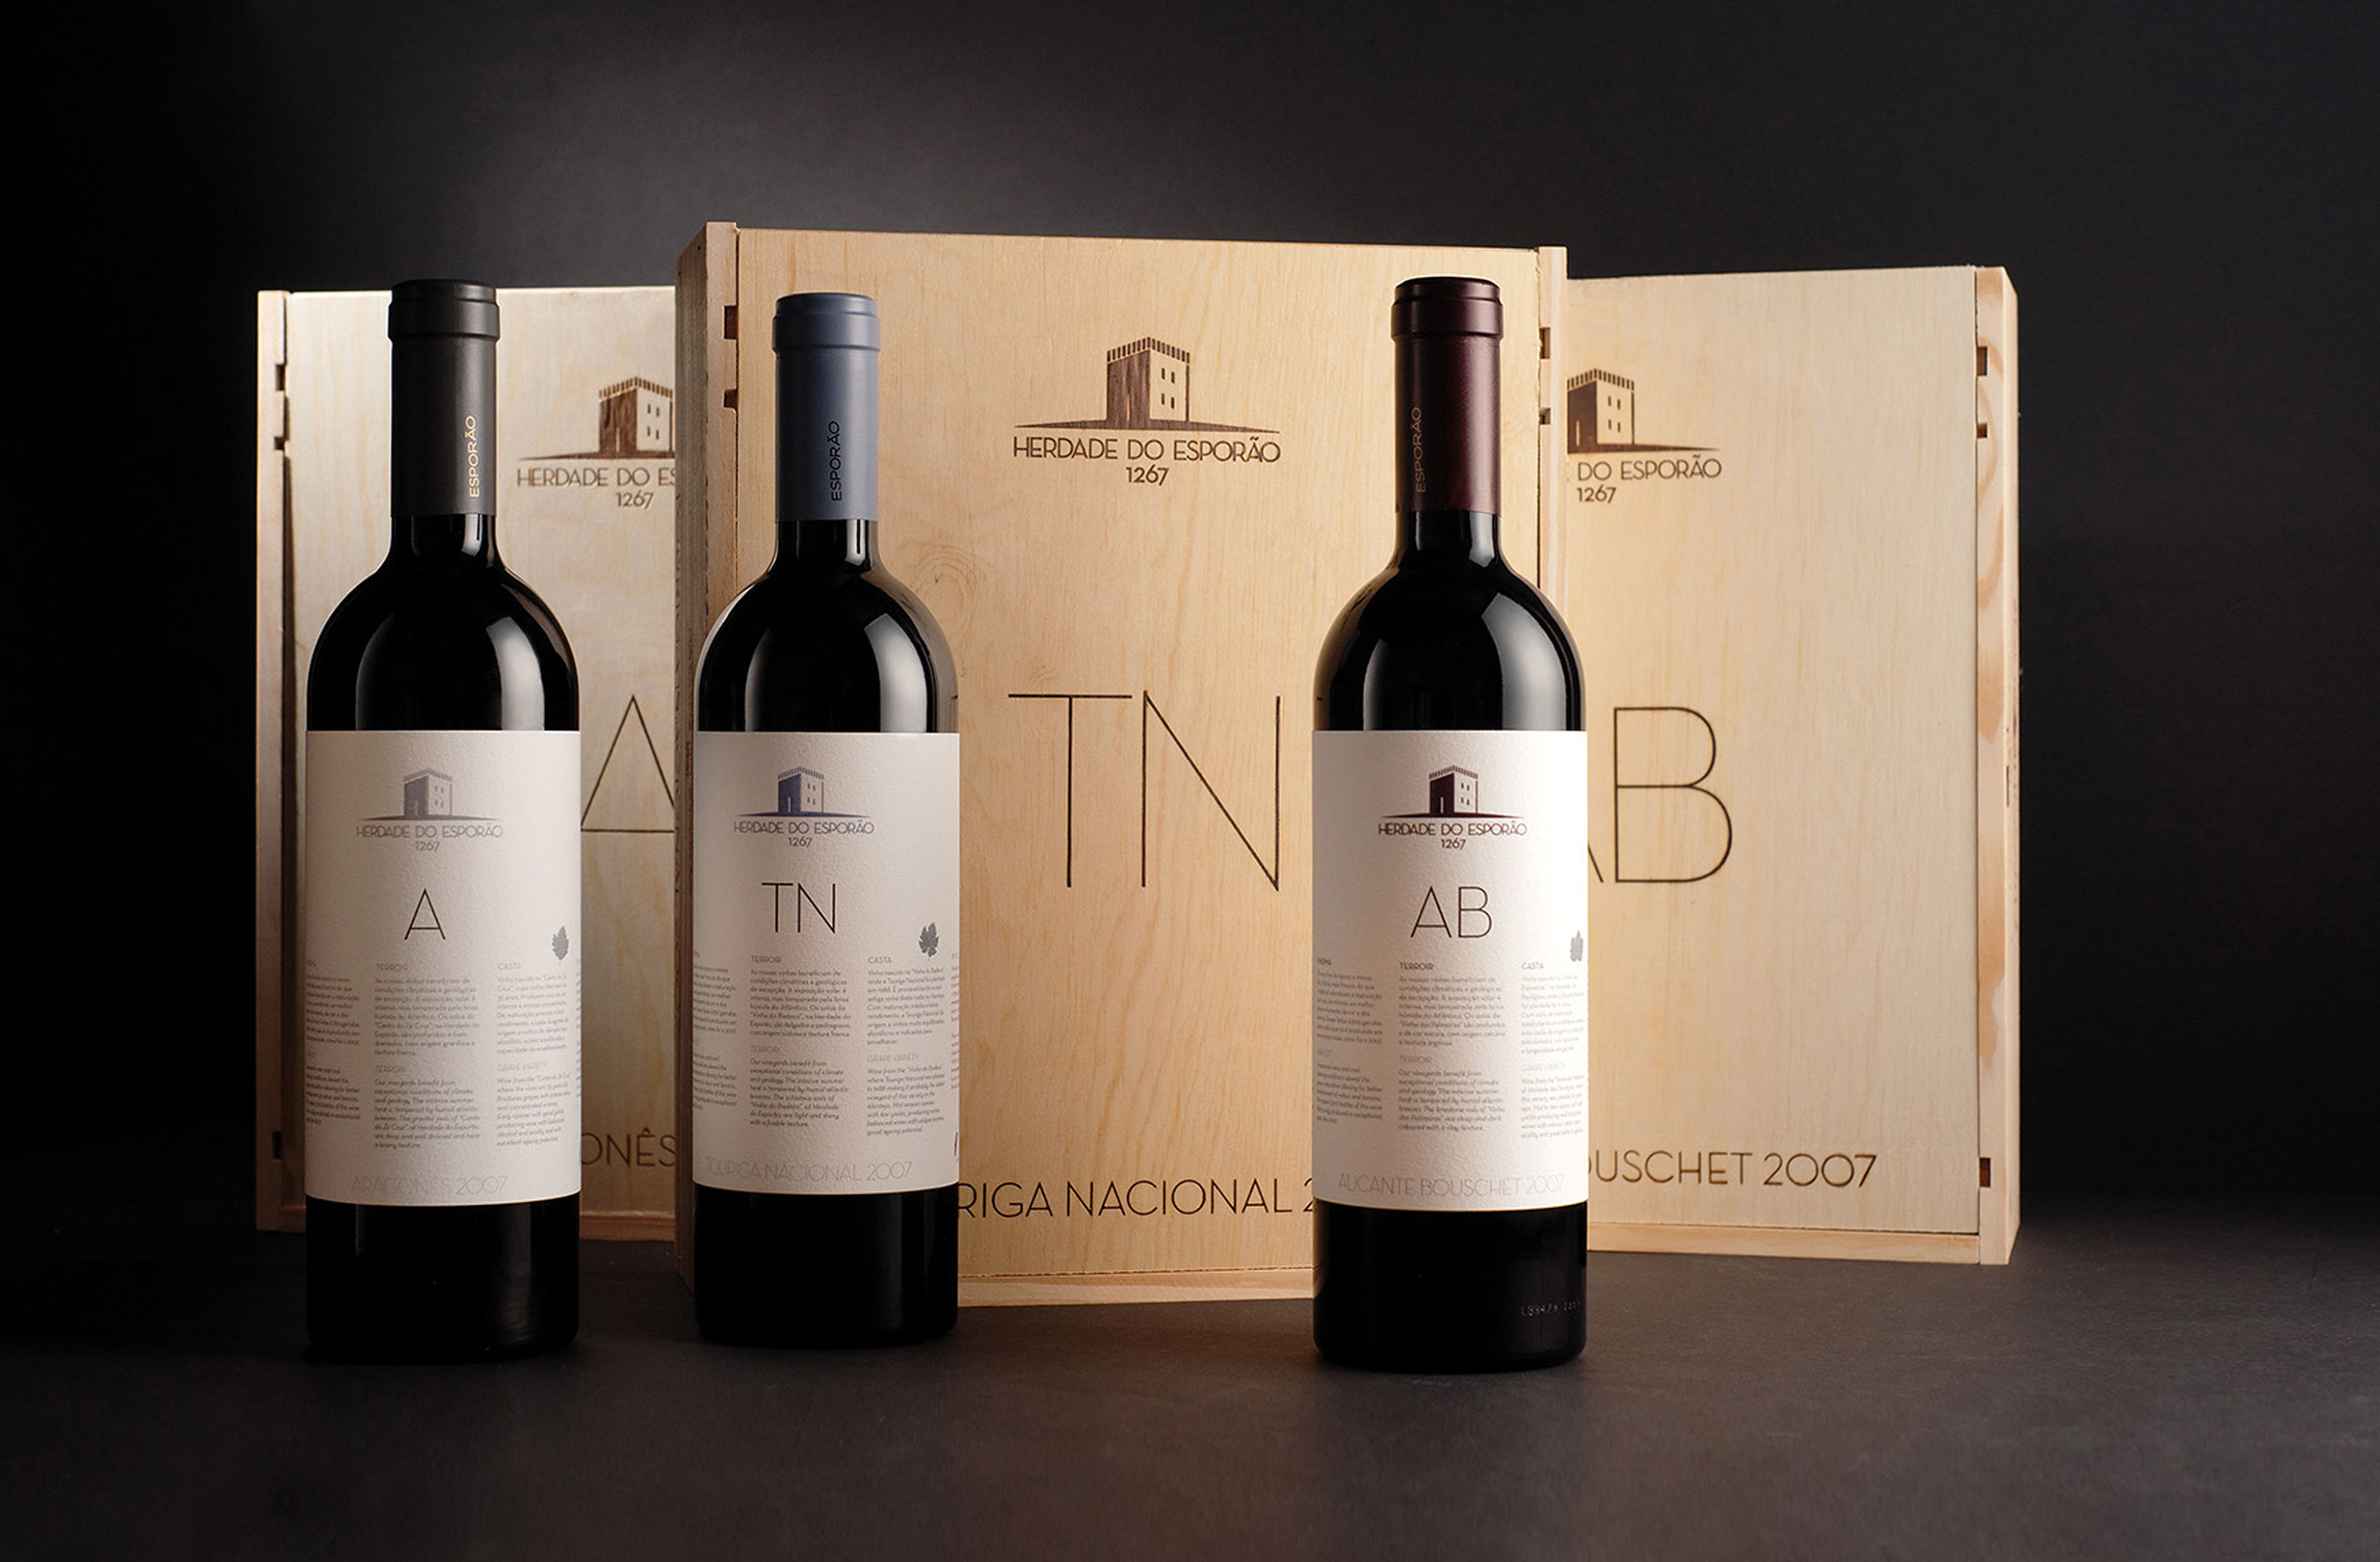 wine, wood, label, packaging, espor�o, portugal, alentejo, red wine, print, box